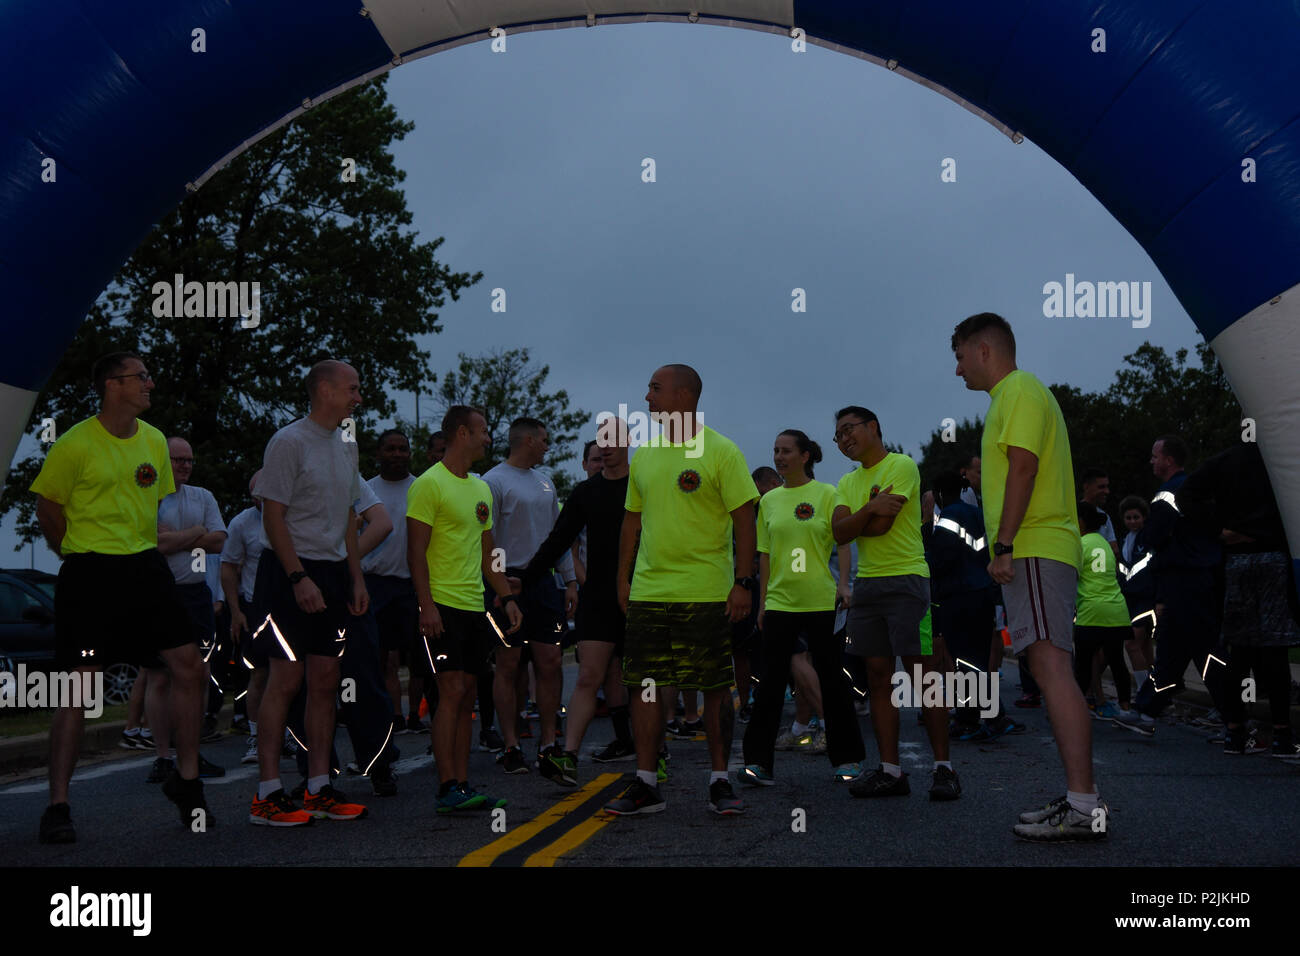 The 11th Civil Engineering Squadron and 11th Security Forces Group participate in the National Preparedness Month 5K at the West Fitness Center on Joint Base Andrews, Md., Sept. 30, 2016. NPM provides a time for readiness and emergency managers to share their knowledge about plans for emergency situations. The run, hosted by 11 CES, had a turnout of more than 50 JBA members. (U.S. Air Force photo by Airman 1st Class Valentina Lopez) - Stock Image